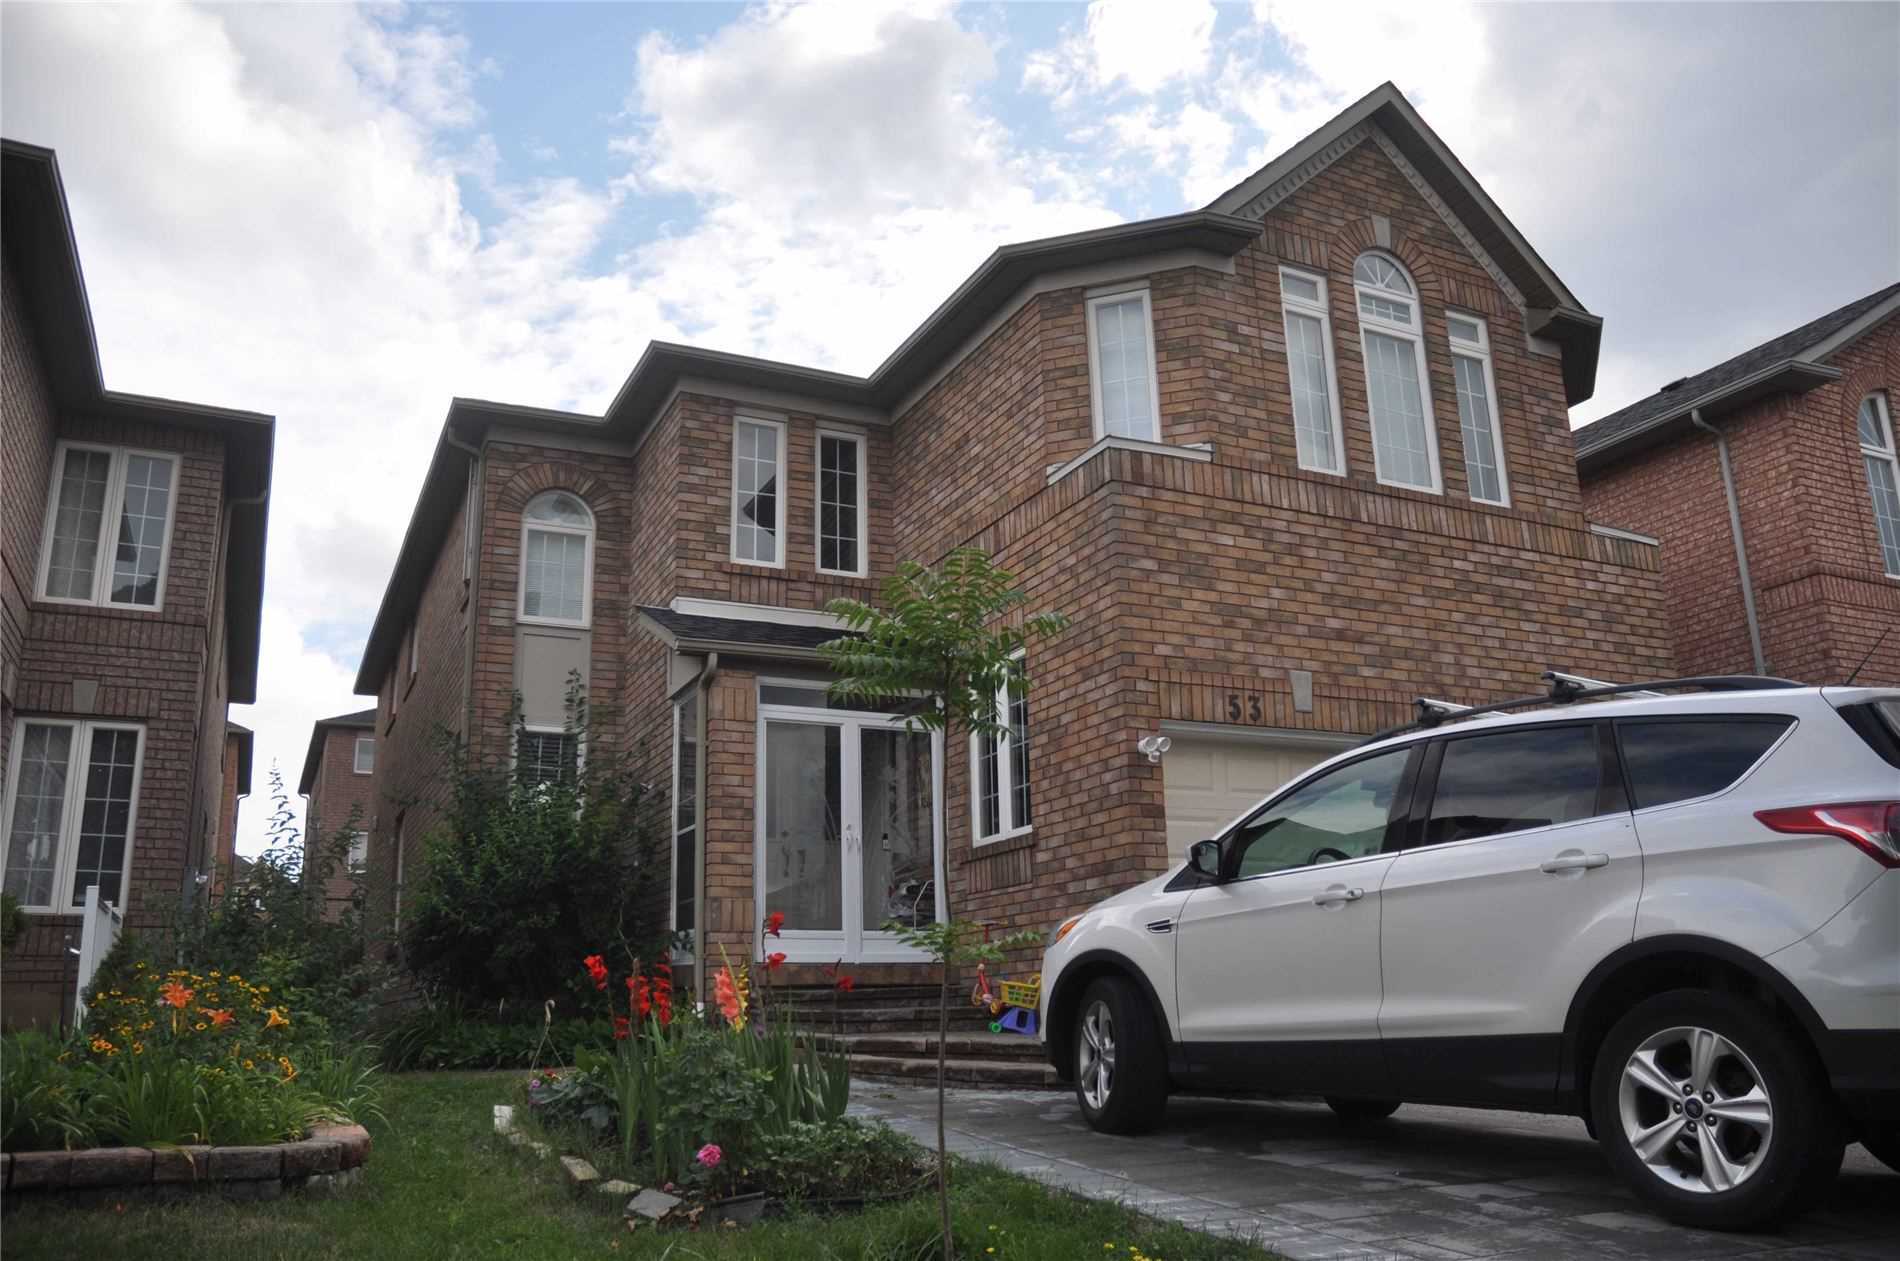 Detached house For Lease In Richmond Hill - 53 Fortune Cres, Richmond Hill, Ontario, Canada L4S1T5 , 2 Bedrooms Bedrooms, ,1 BathroomBathrooms,Detached,For Lease,Bsmt,Fortune